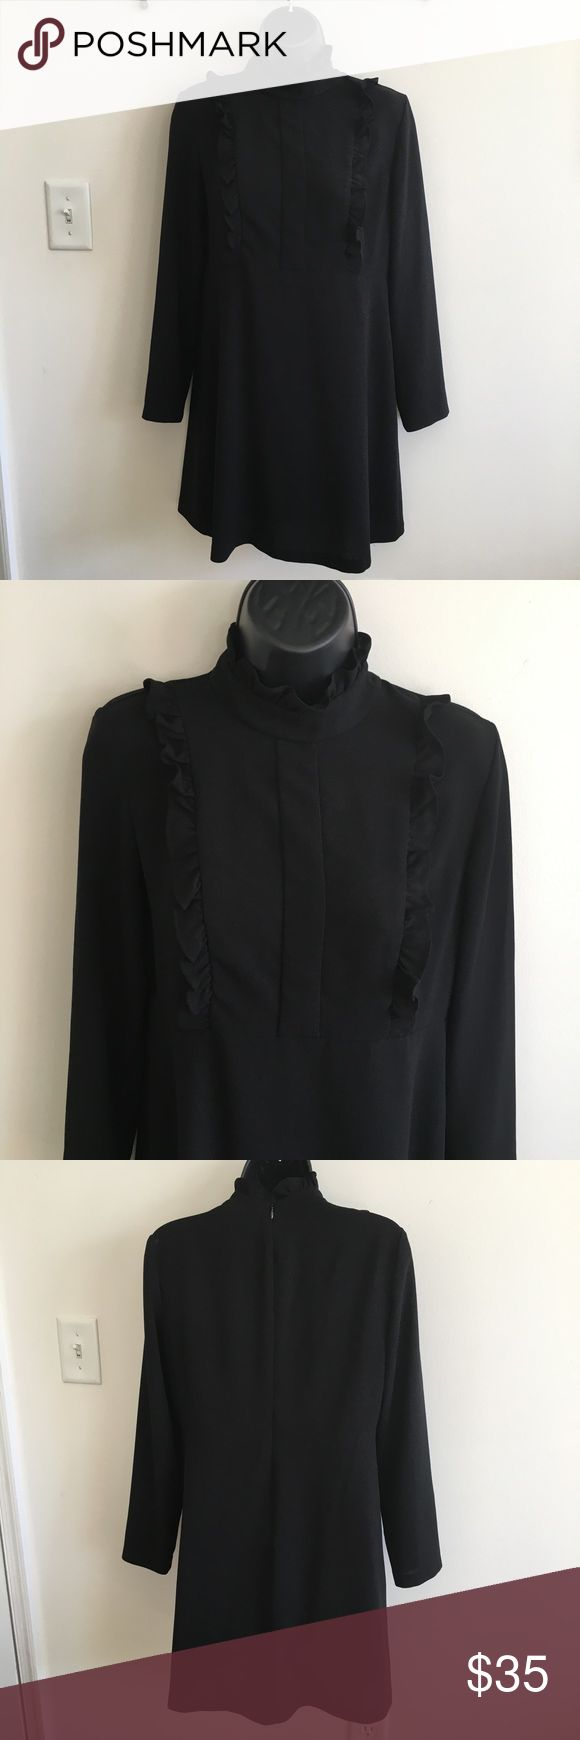 Zara Woman Black Ruffle Dress 🚭 Items from smoke and pet free home 📬Fast same or next day shipping 🚩Any flaws are noted in description/photos ♻️Packaging recycled/reused-please recycle ❓ Please reach out with any questions! 🕶 Like/follow for frequent sales/new inventory 👙Thank you for visiting my closet! Zara Dresses